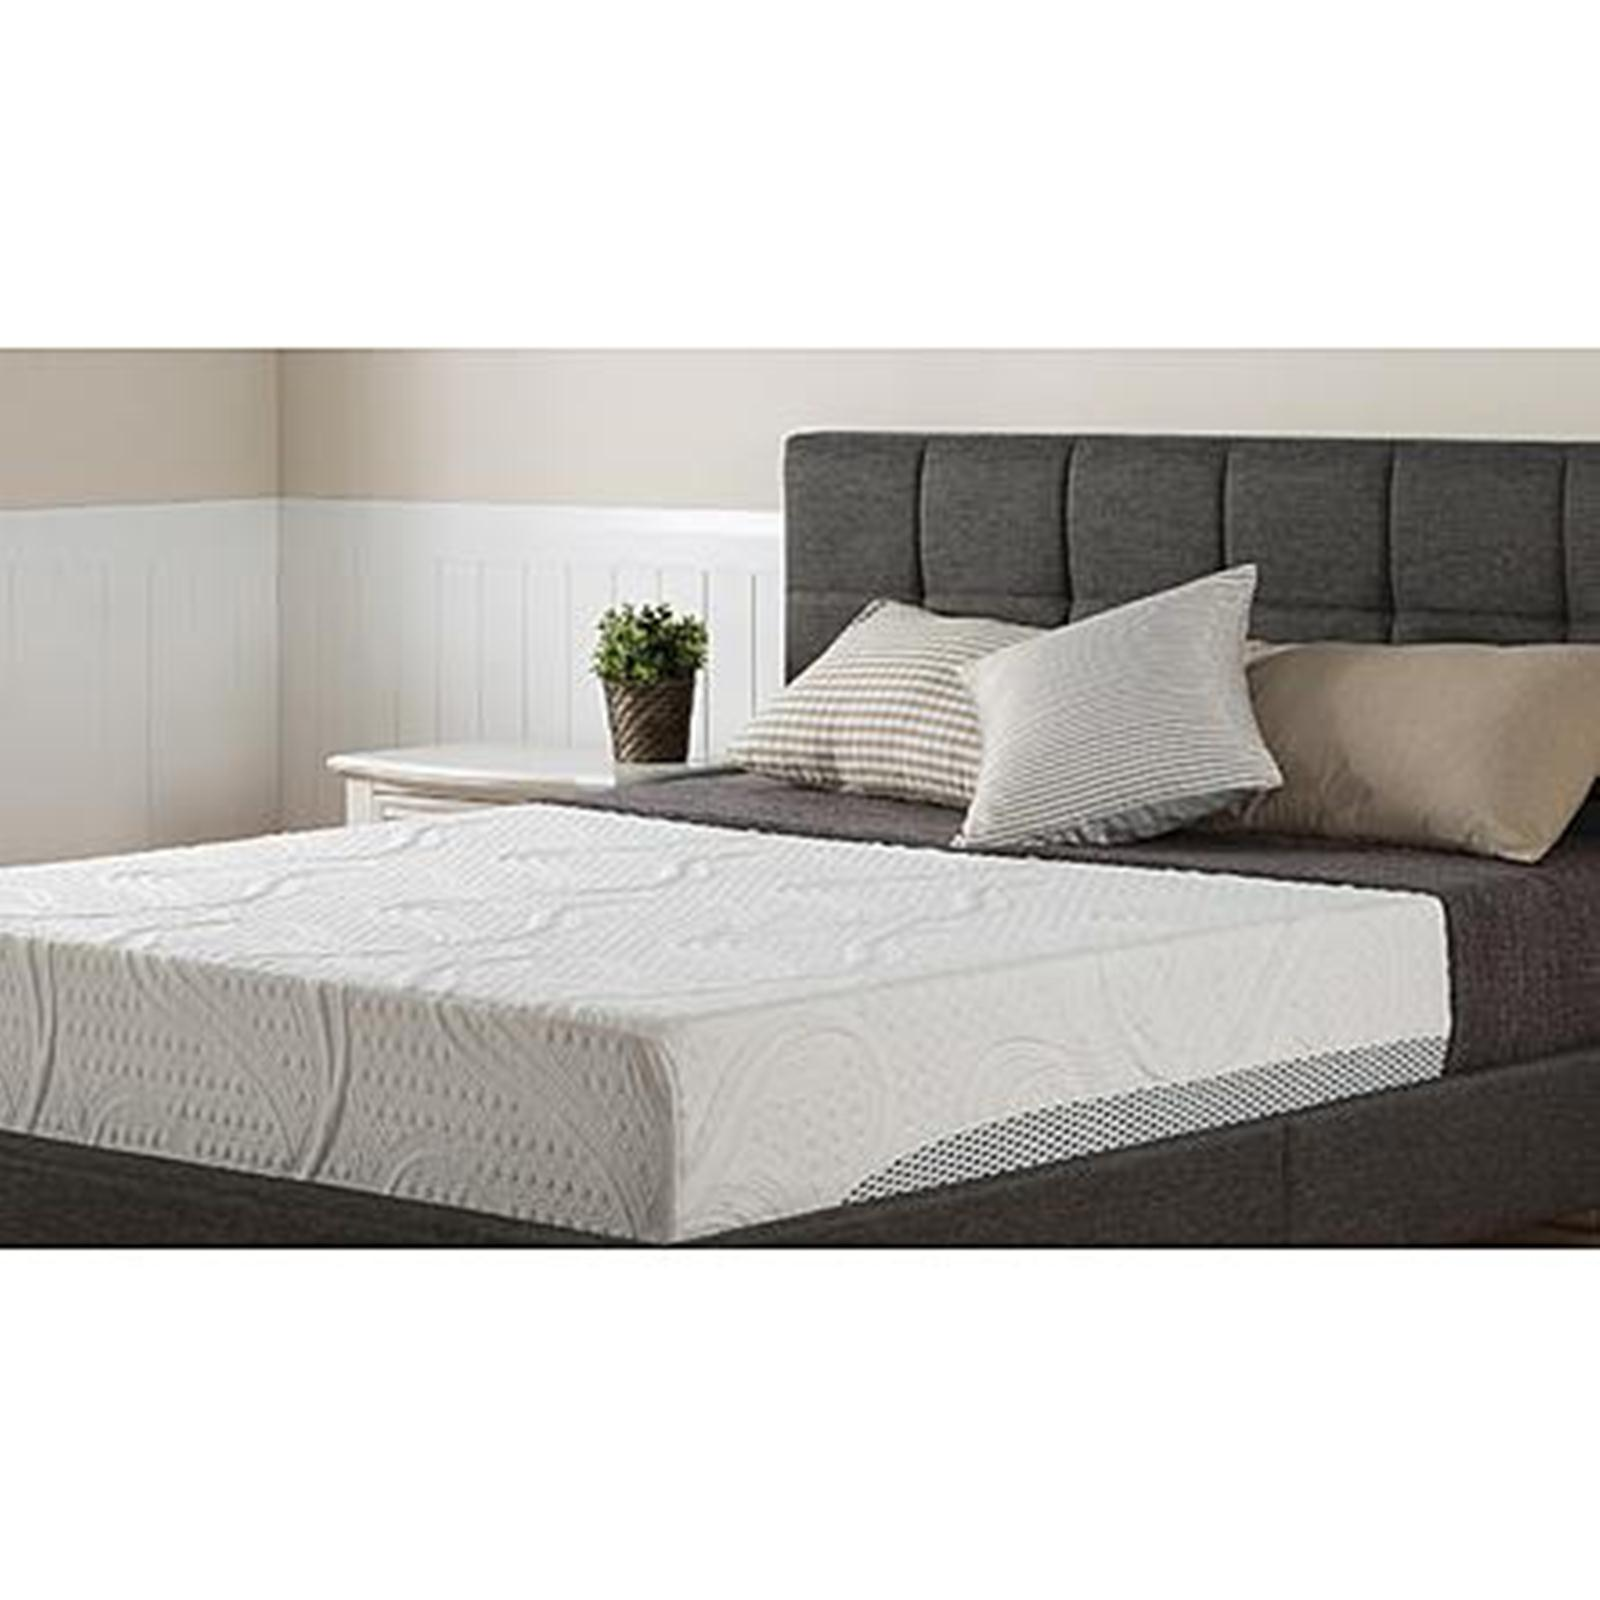 Night Therapy - Nt-sc-fm113-10q 10 Memory Foam Mattress Queen Sears Outlet